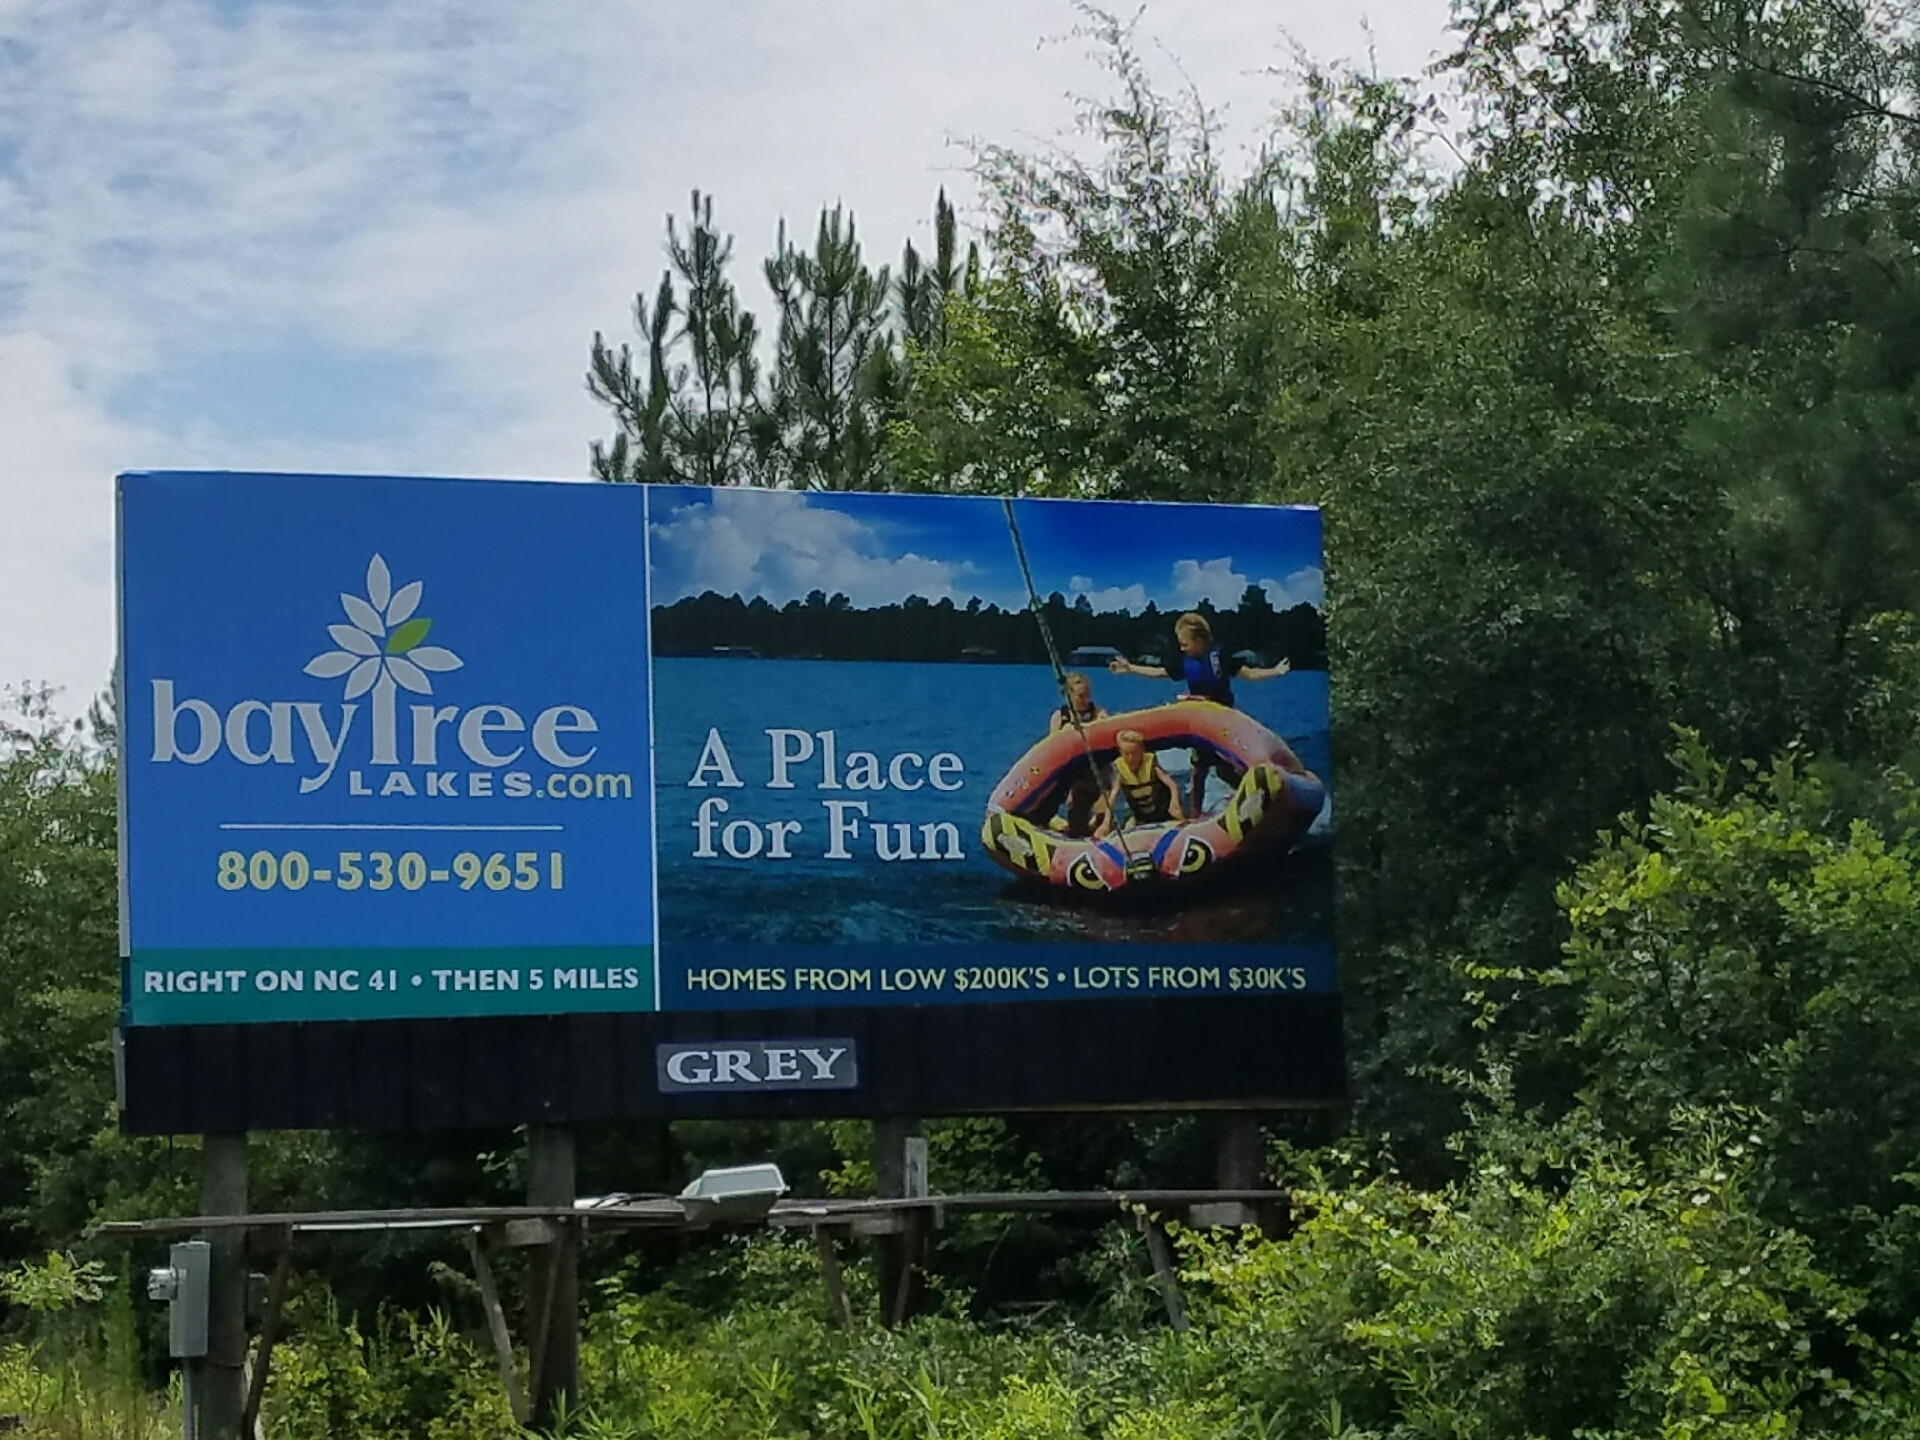 bay tree lakes billboard